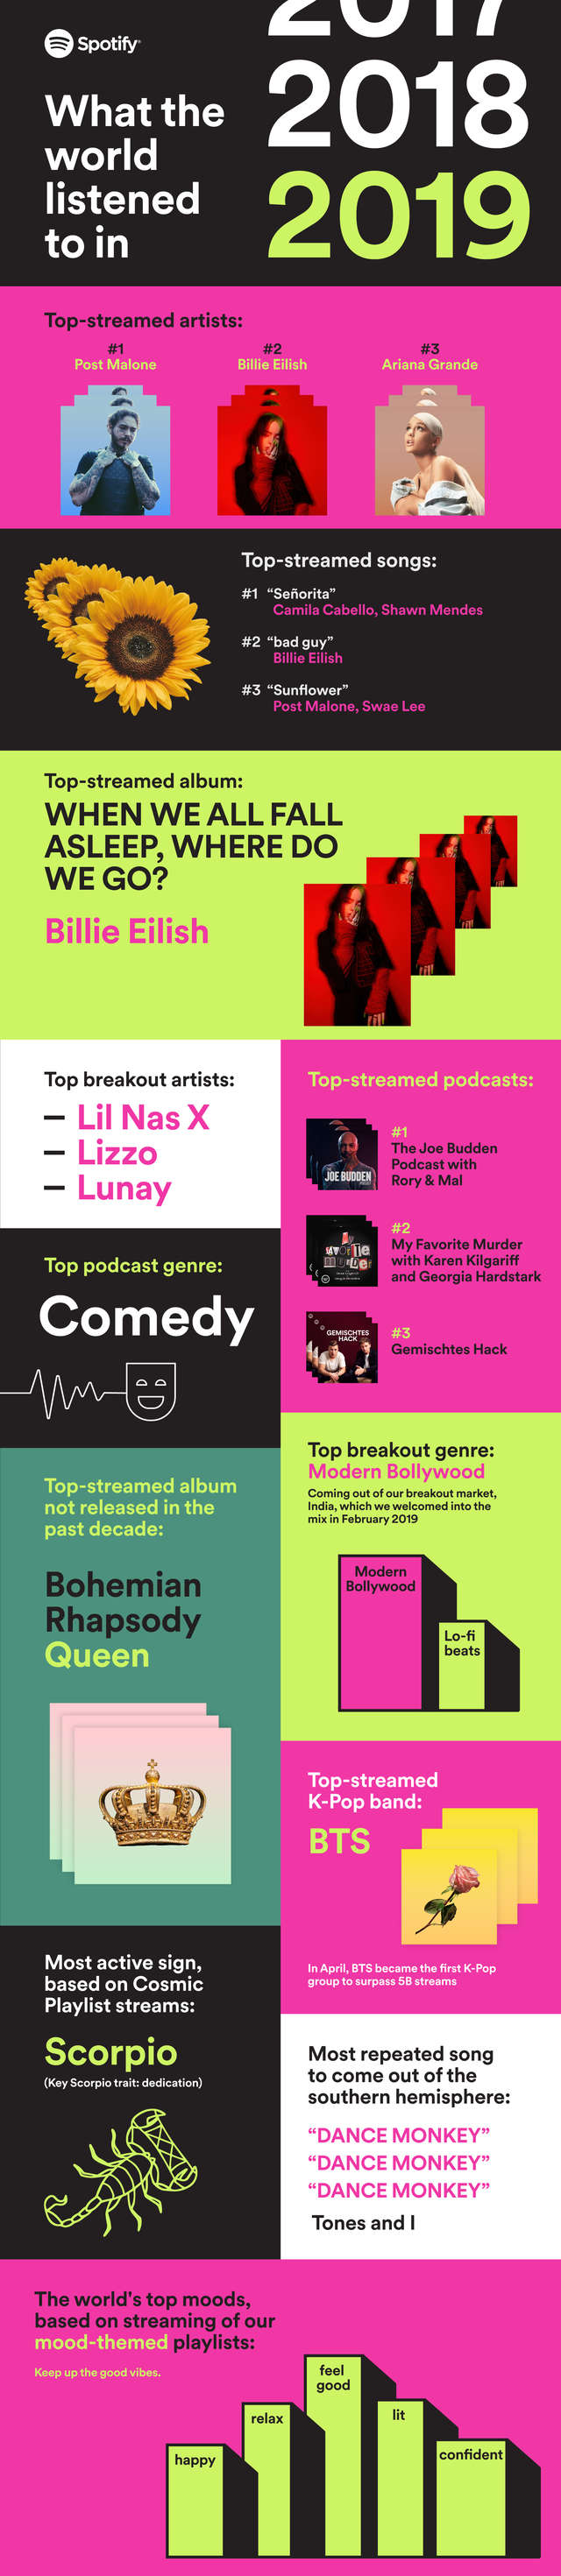 Here's How to See What You Listened to Most on Spotify